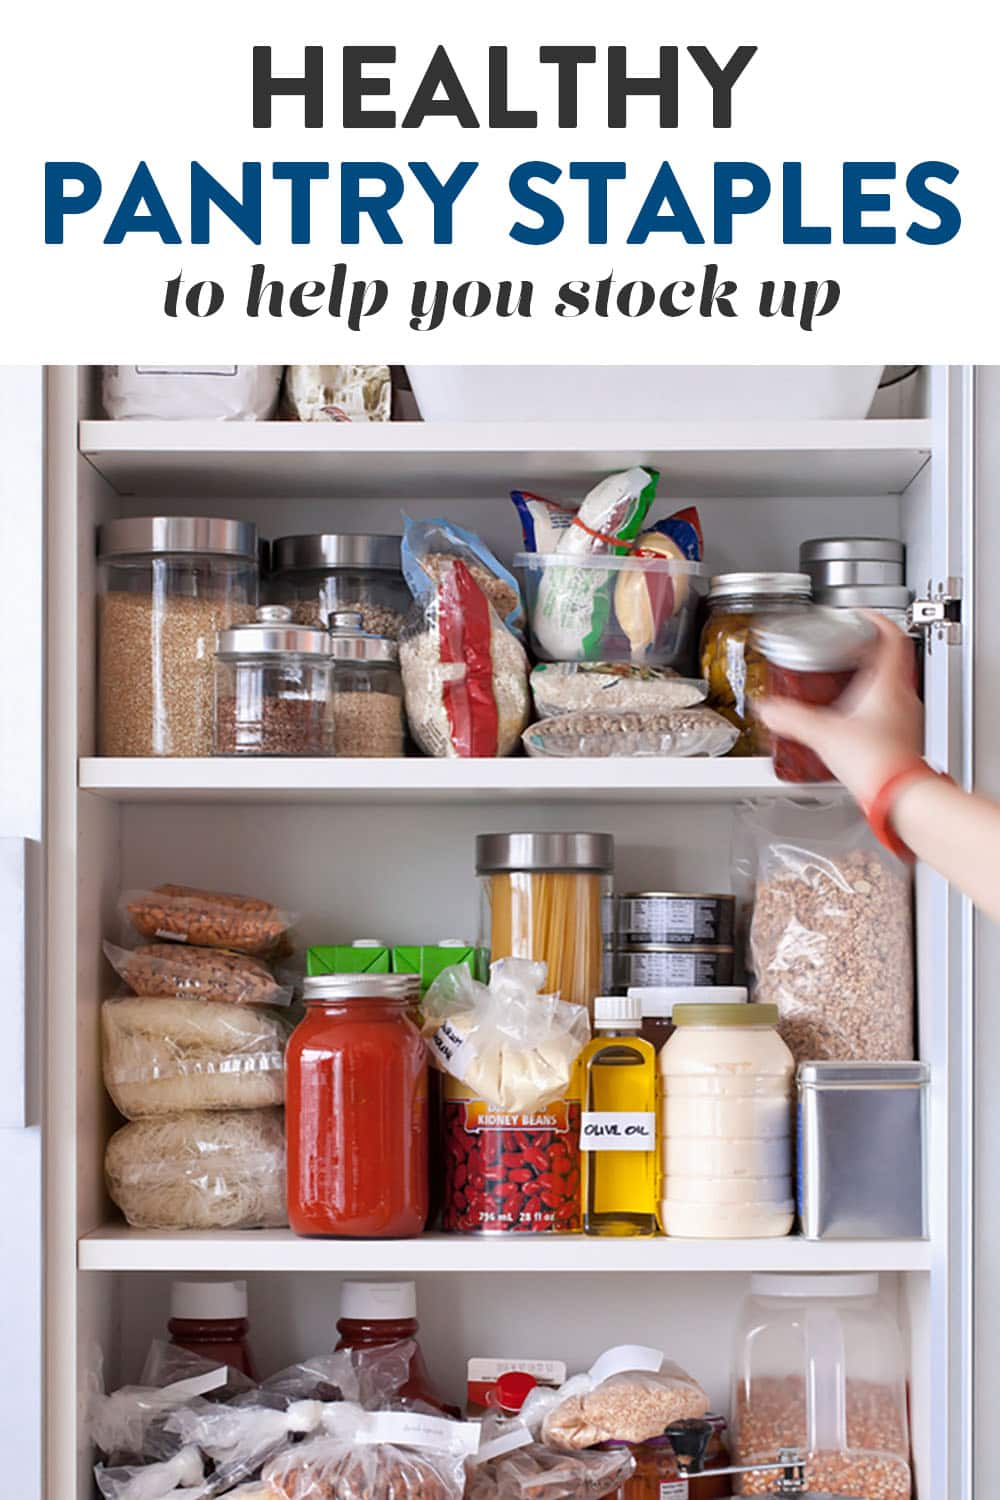 Healthy non perishable foods in a pantry.